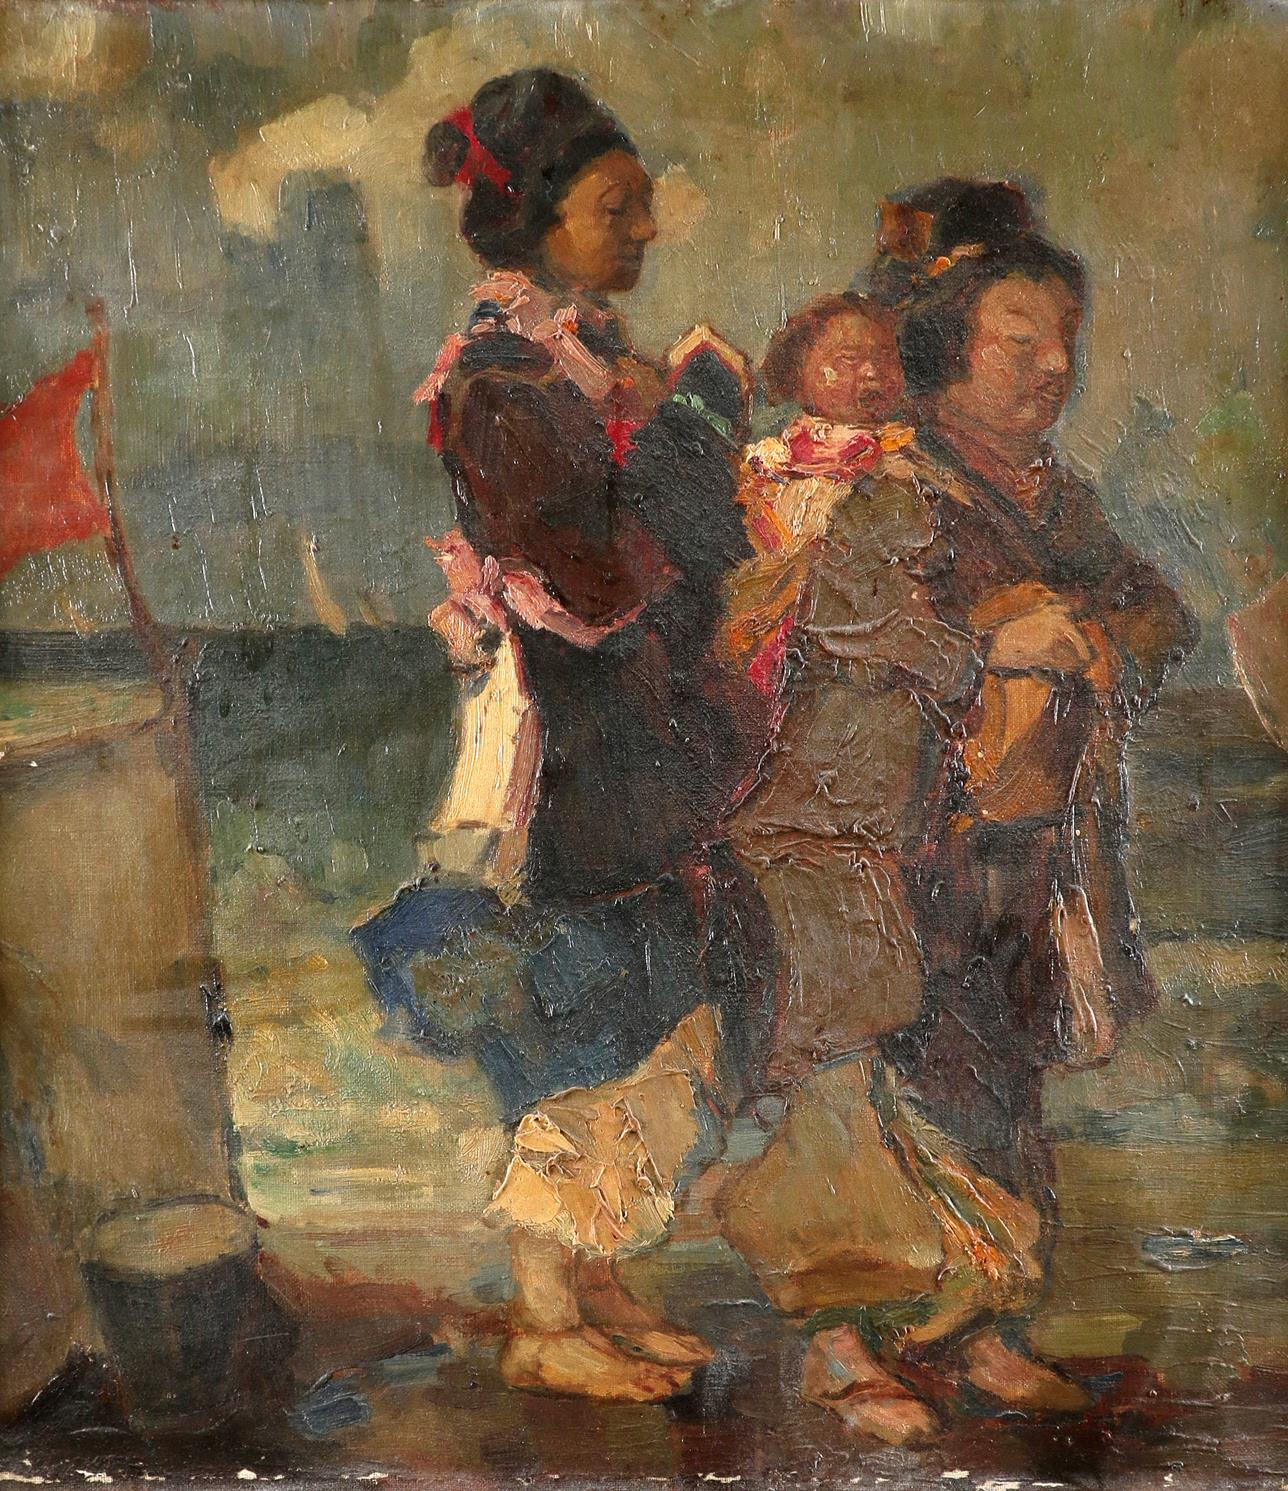 Continental School 20th Century Two women and a child on a beach Oil on canvas 52.8 x 48cm